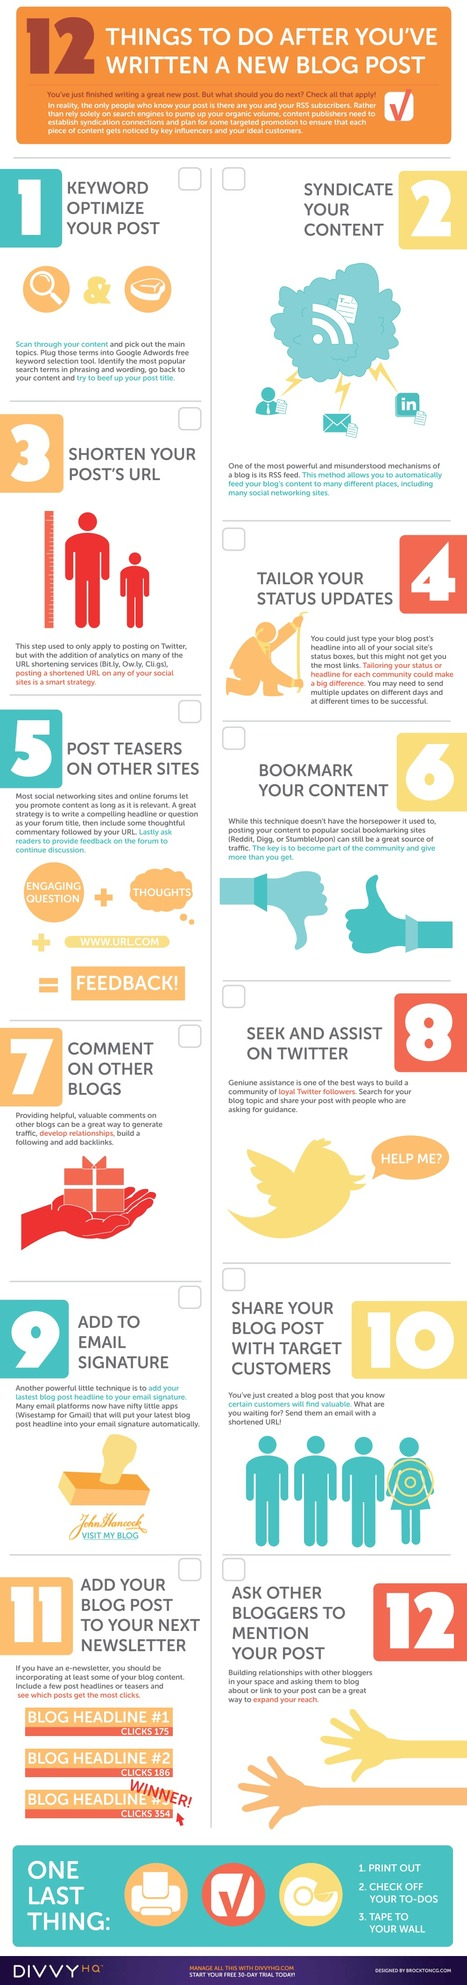 12 Things To Do After You've Published a New Blog Post | Infographic | No.113 Branding | Scoop.it